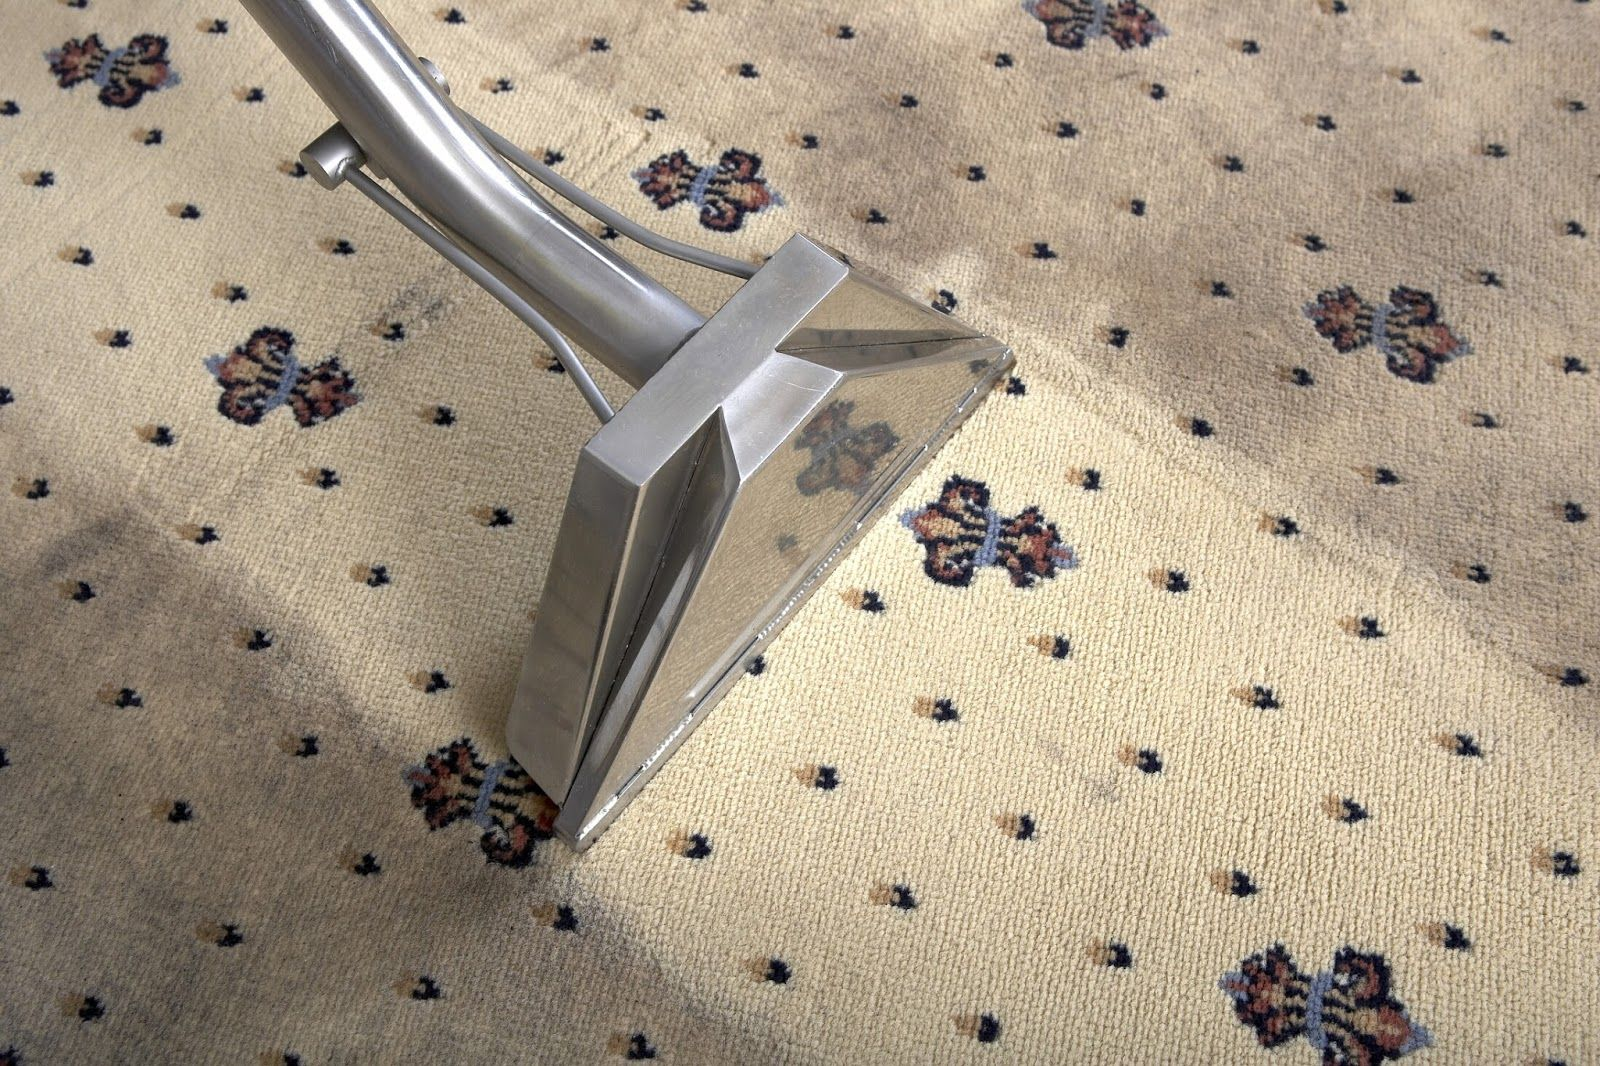 Carpet Cleaning For Beautification And The Removal Of Stains Dirt Grit Sand And Al Carpet Cleaning Hacks Professional Carpet Cleaning Cleaning Upholstery